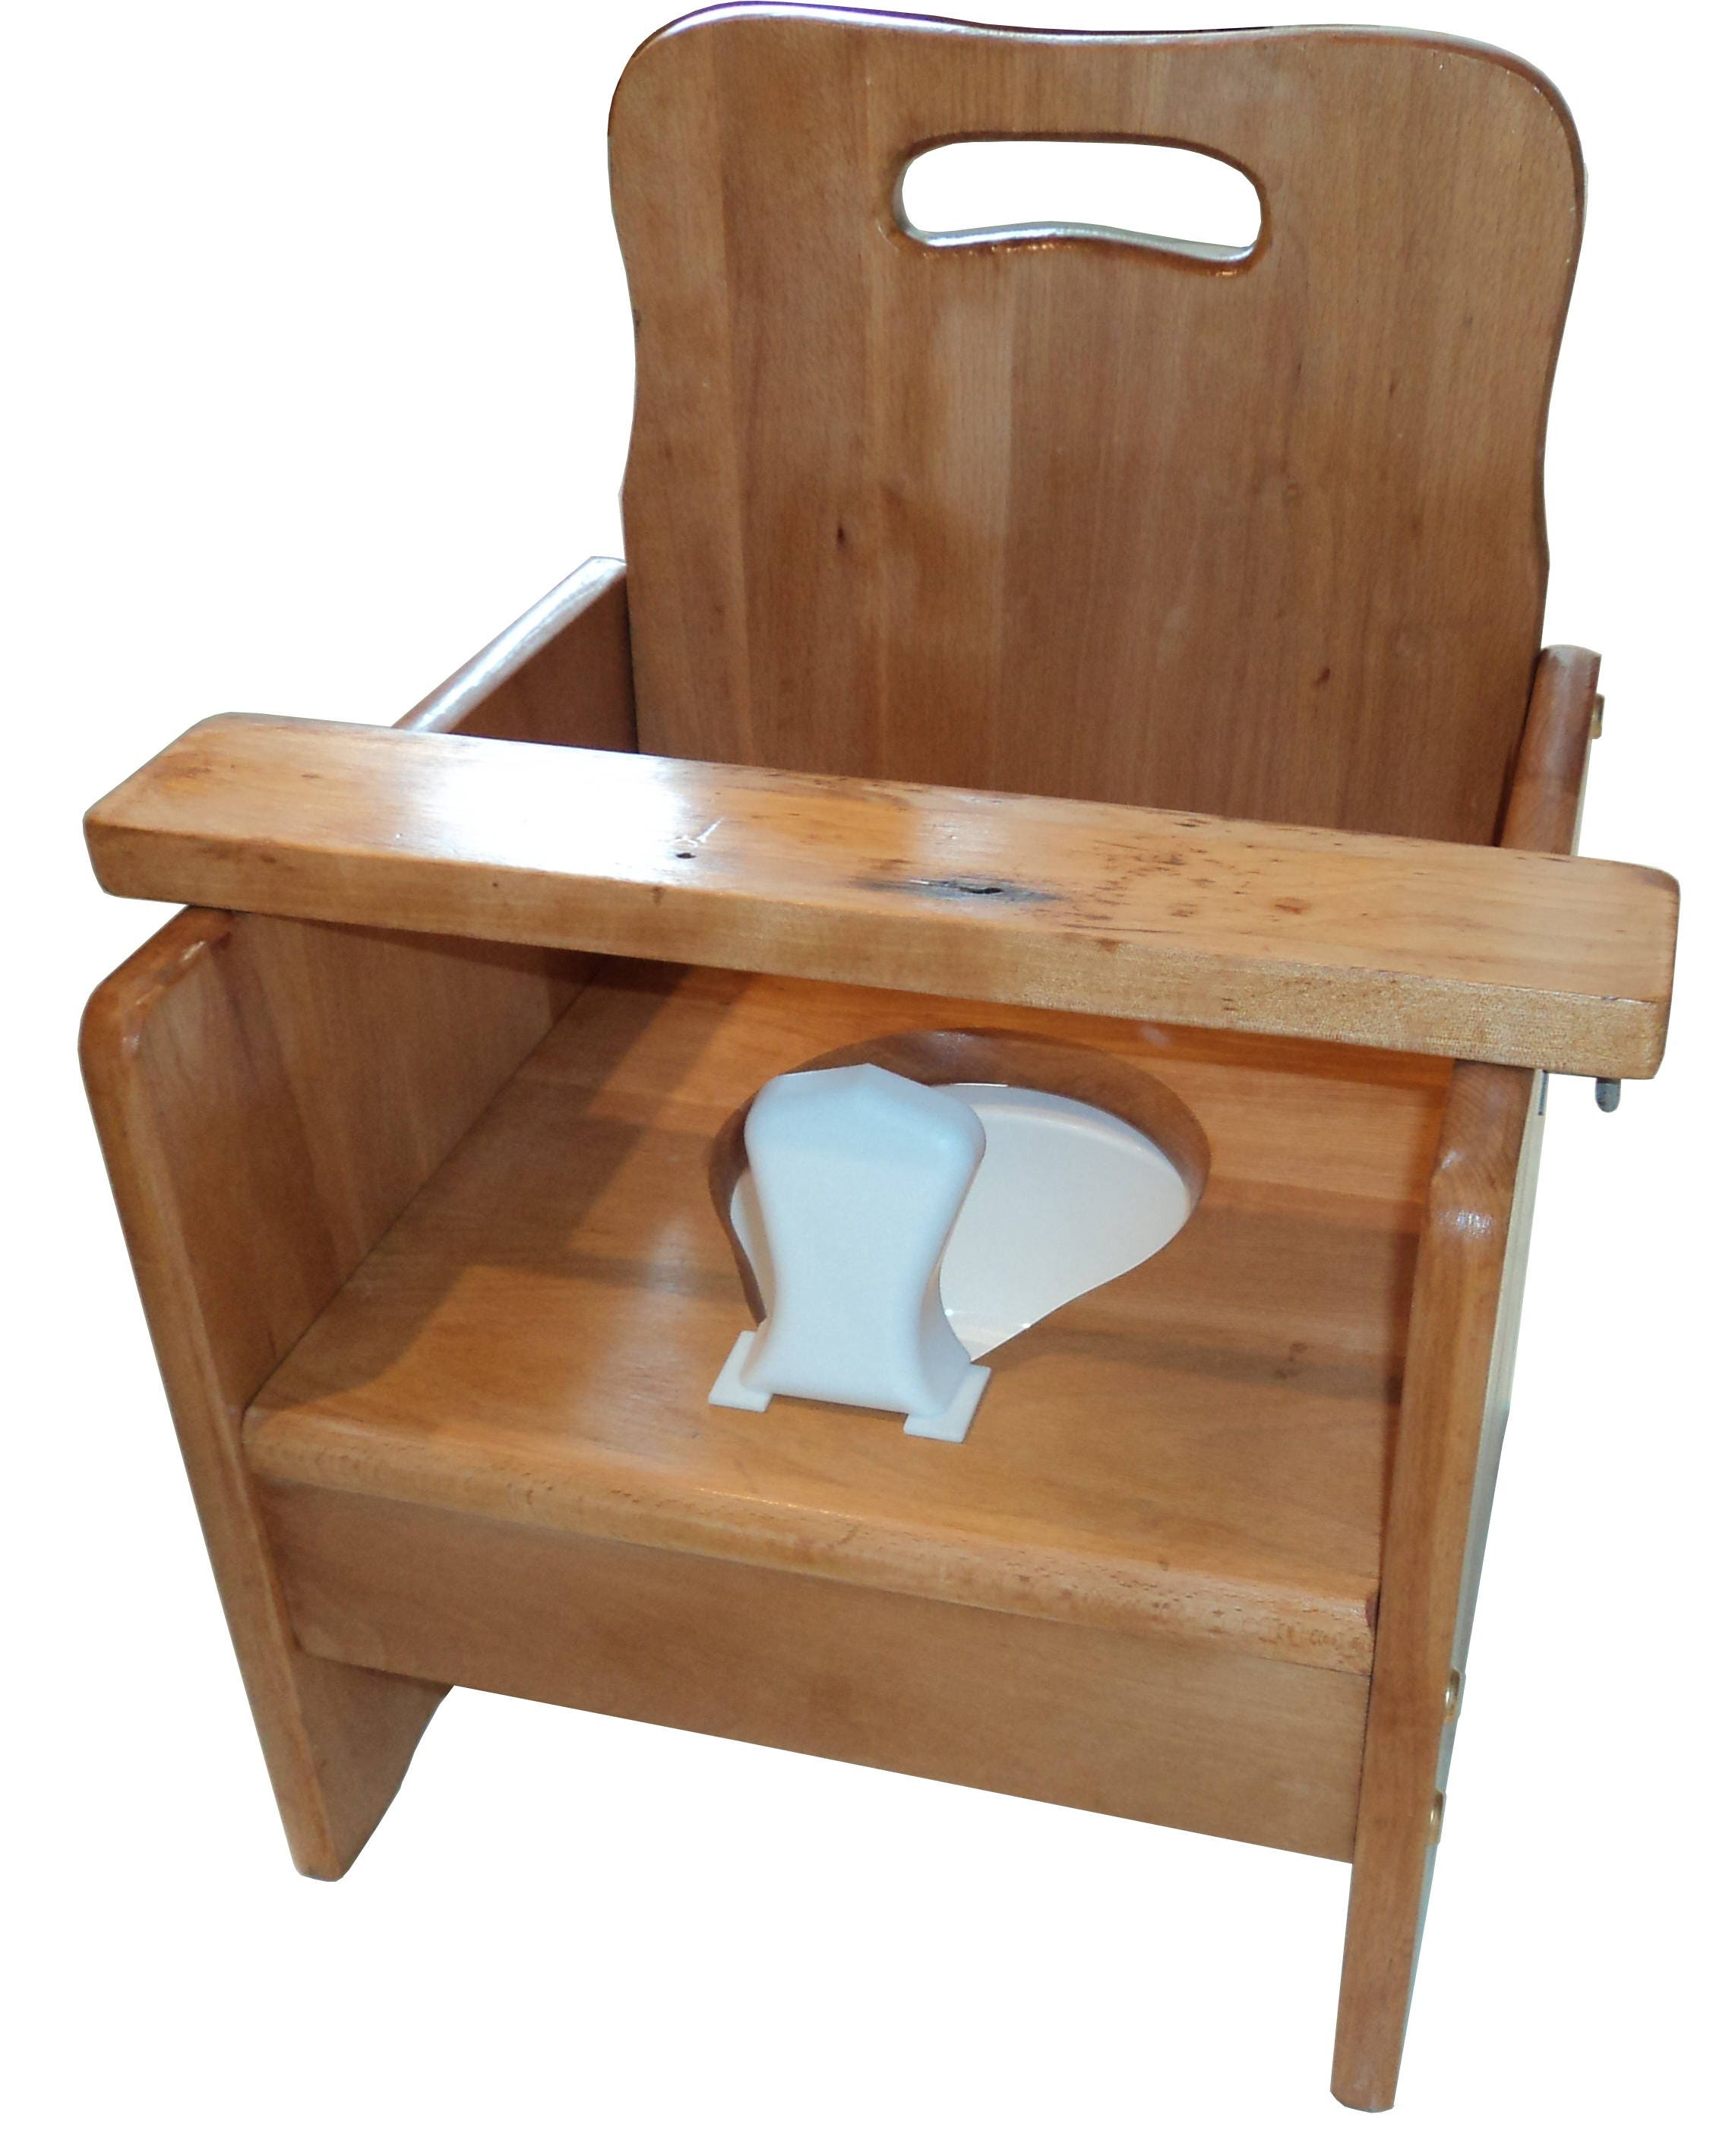 wooden potty chair swing garden with tray bar old fashioned ready for